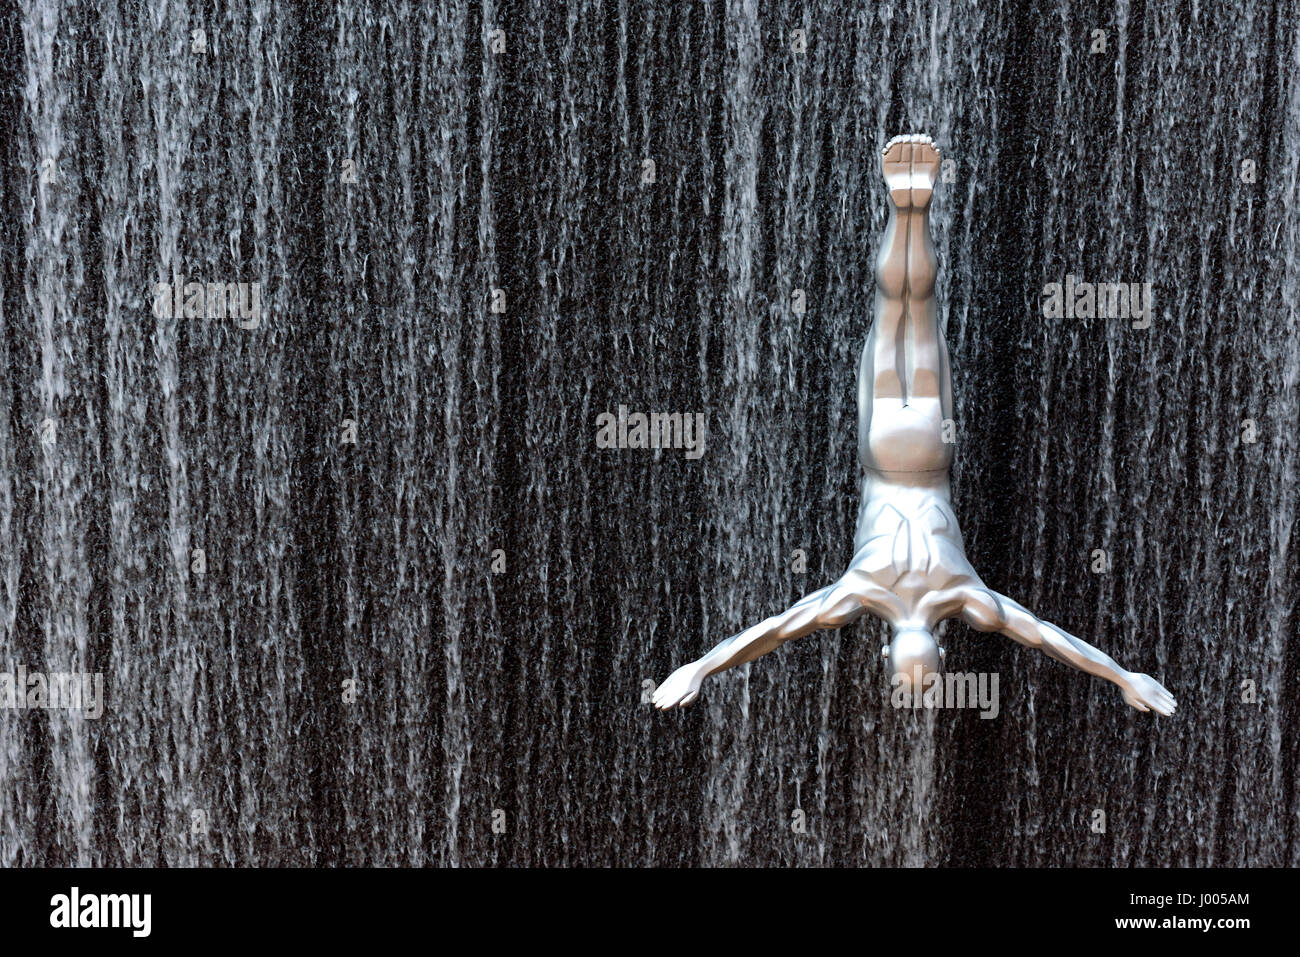 silver male sculpture installed to create a jumping effect on the fountain of Dubai Mall in Dubai, United Arab Emirates. - Stock Image